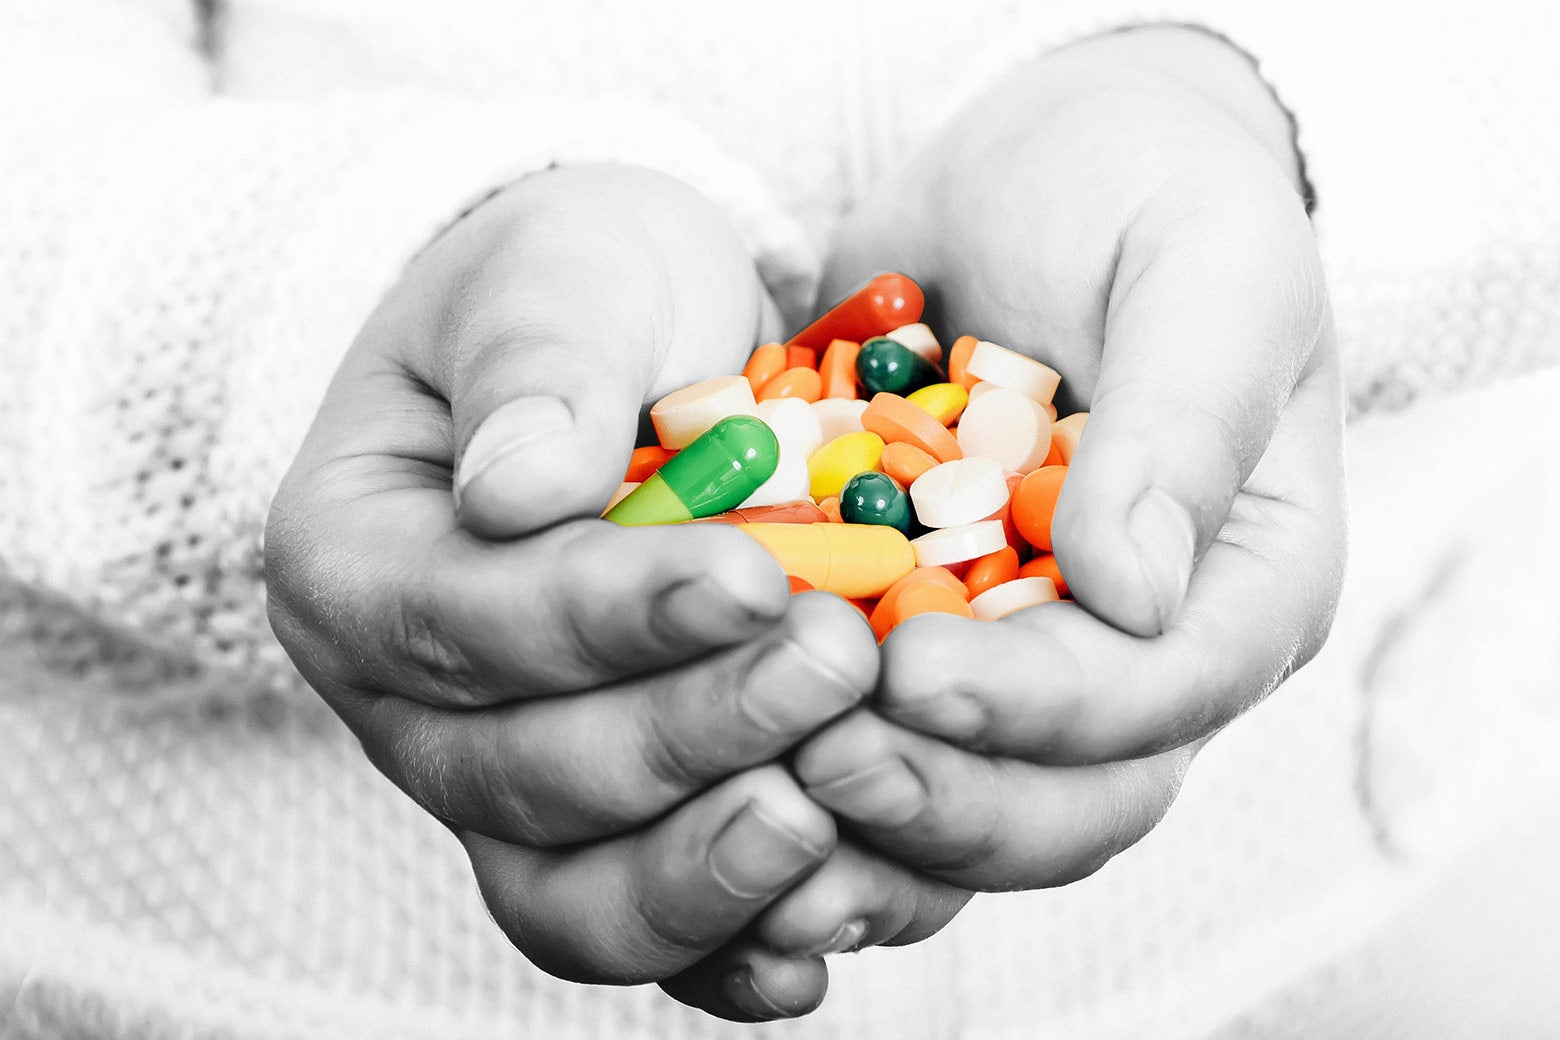 A child's hands cupping a colorful assortment of prescription pills.